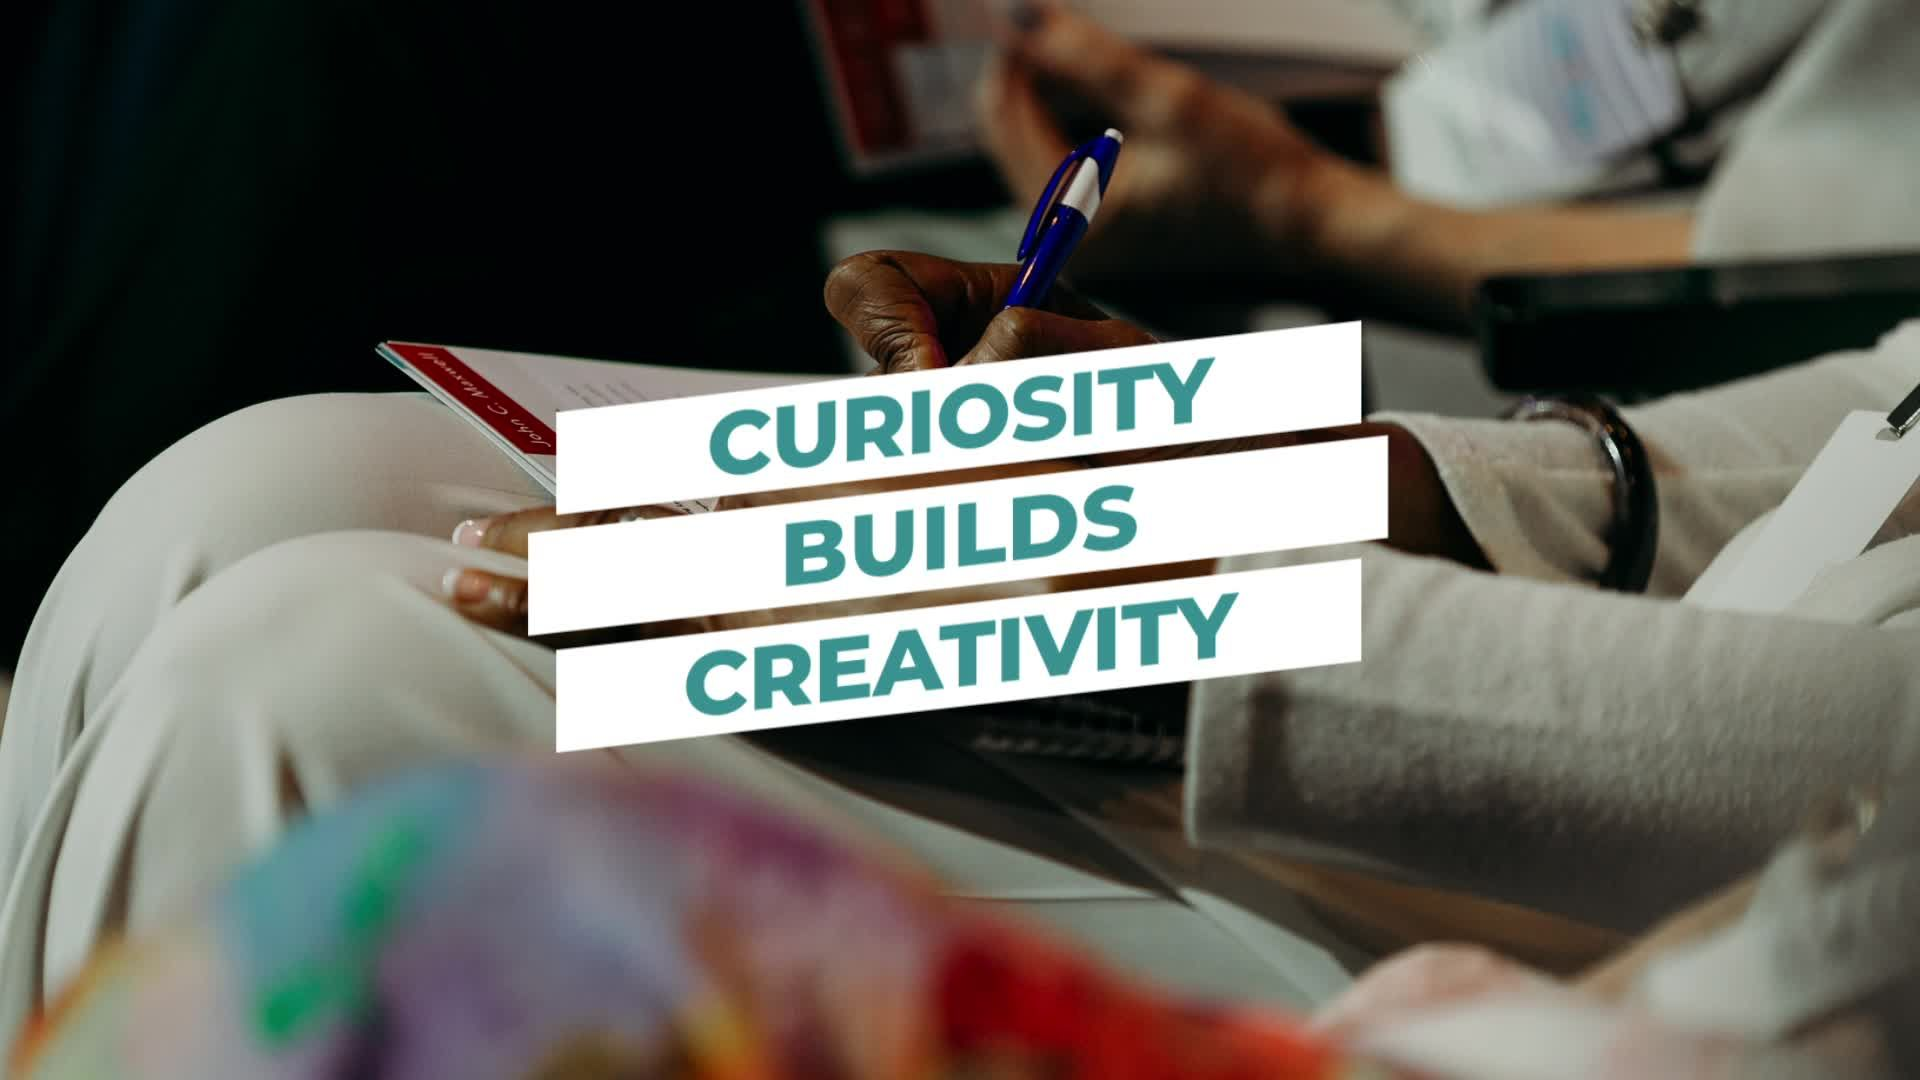 Curiosity Builds Creativity